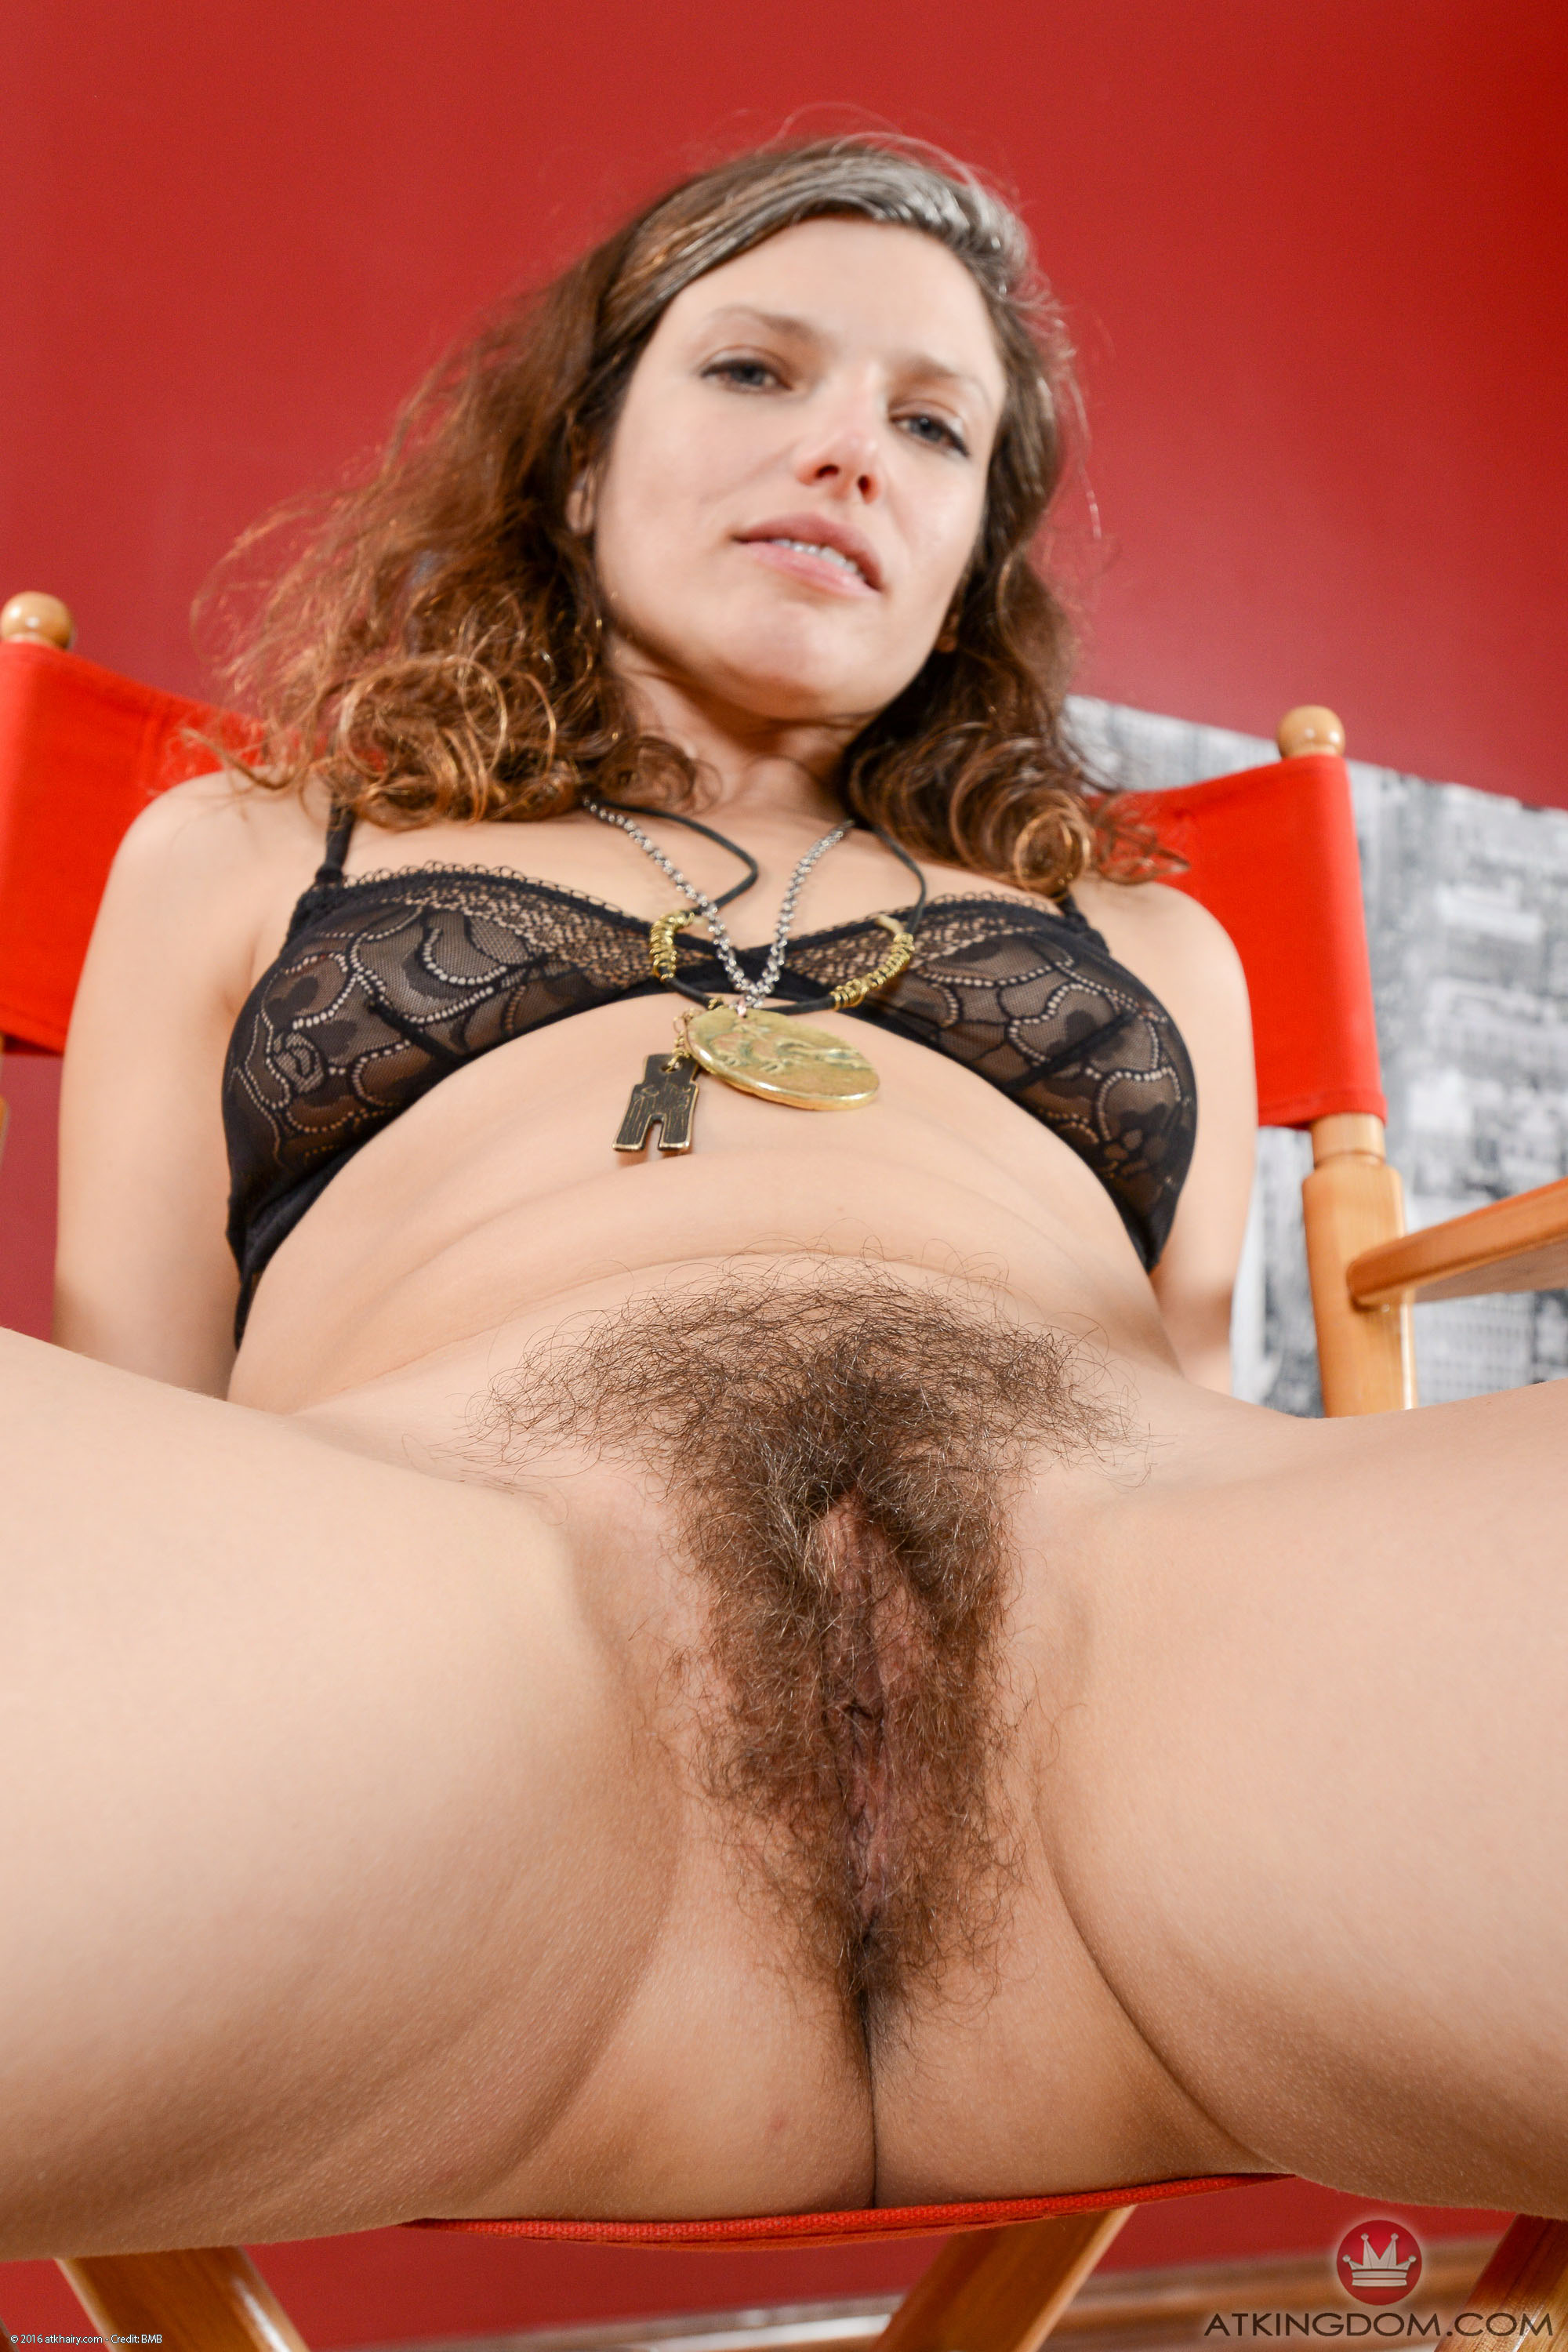 For best hairy pussy sites